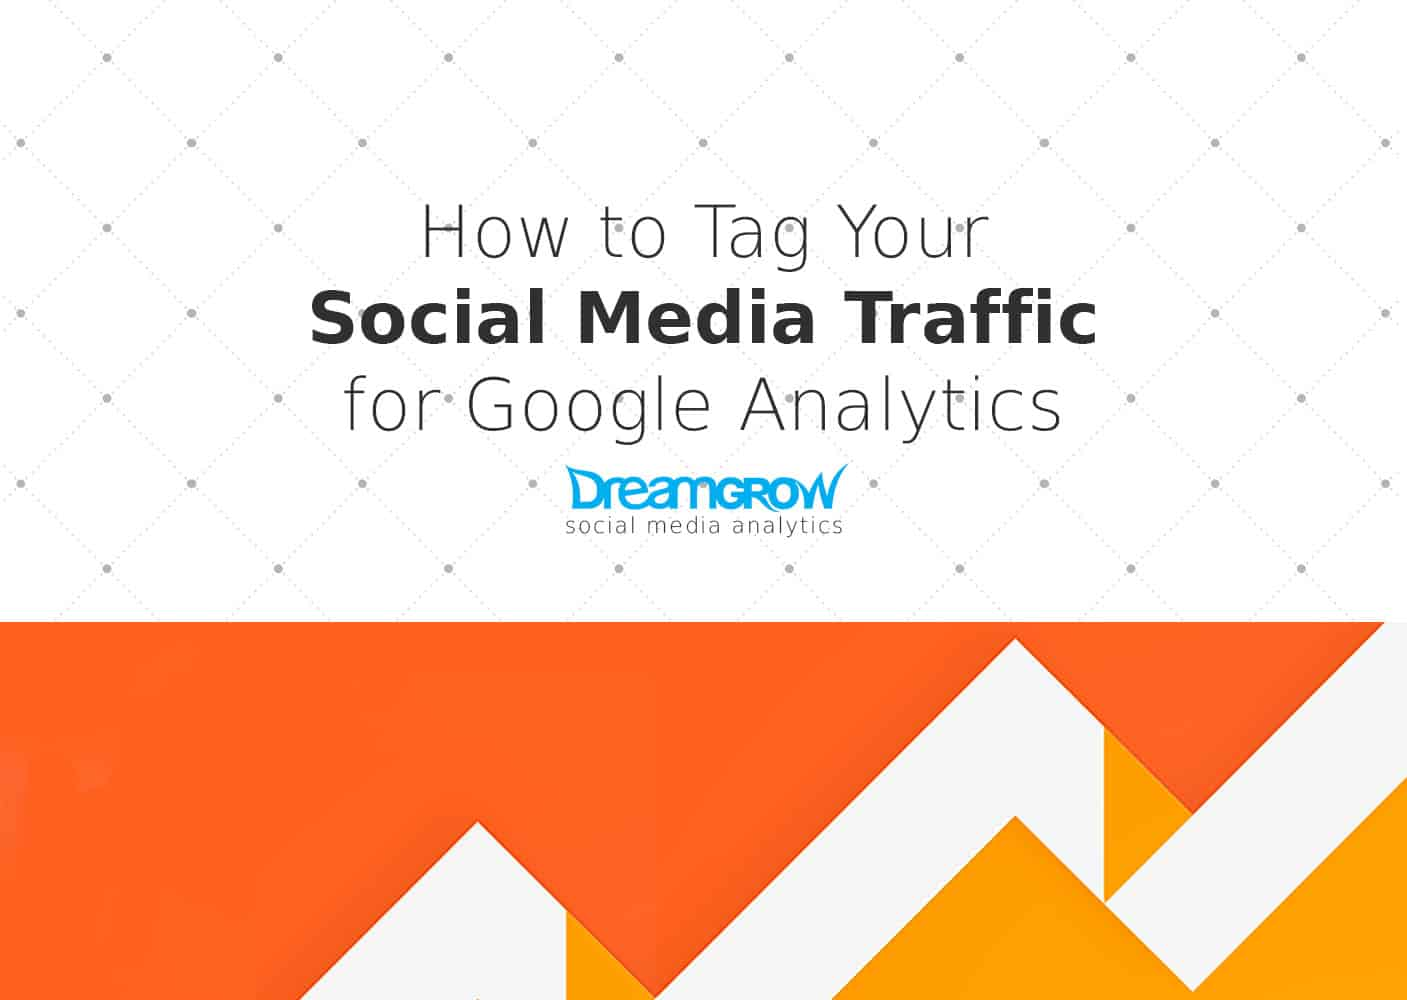 How To Tag Your Social Media Traffic For Google Analytics DreamGrow 2018